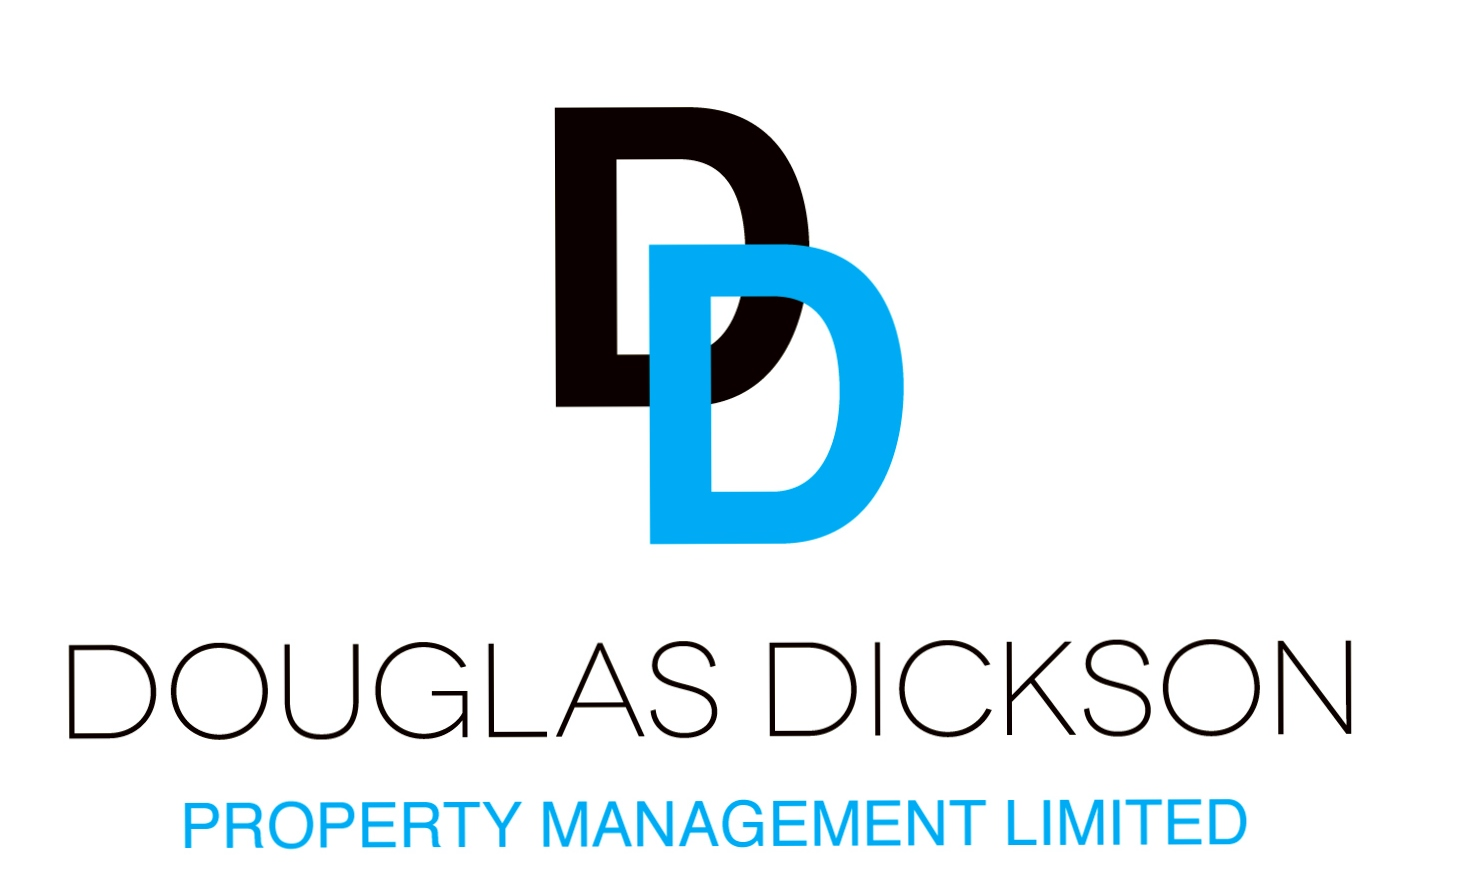 www.douglasdickson.co.uk